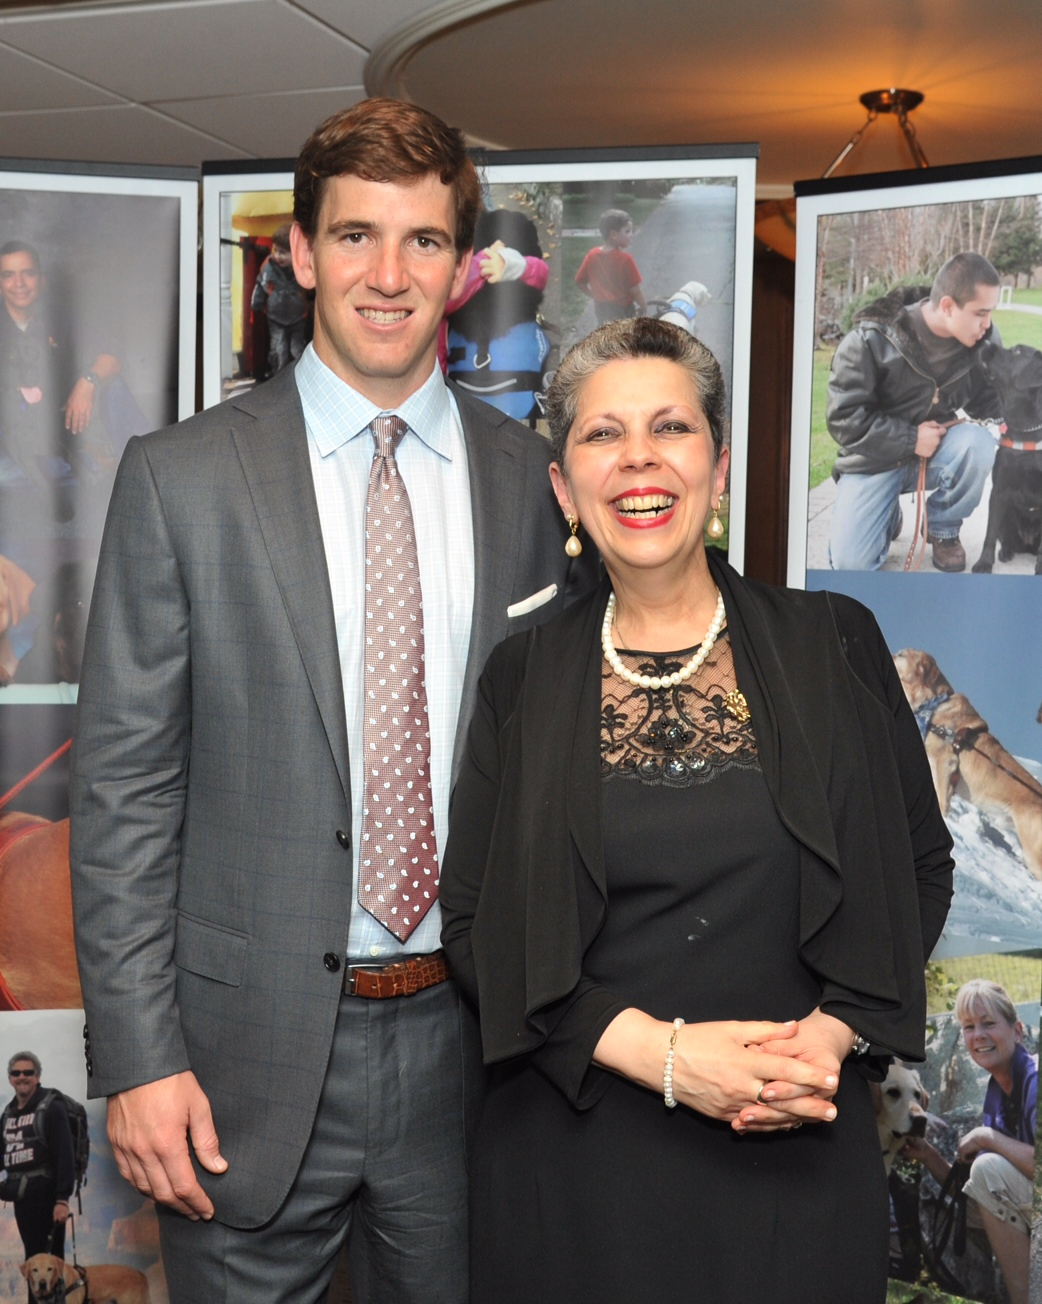 Eli Manning was kind enough to pose for pictures, including some with Yours Truly. Photograph byJohn Vecchiola.